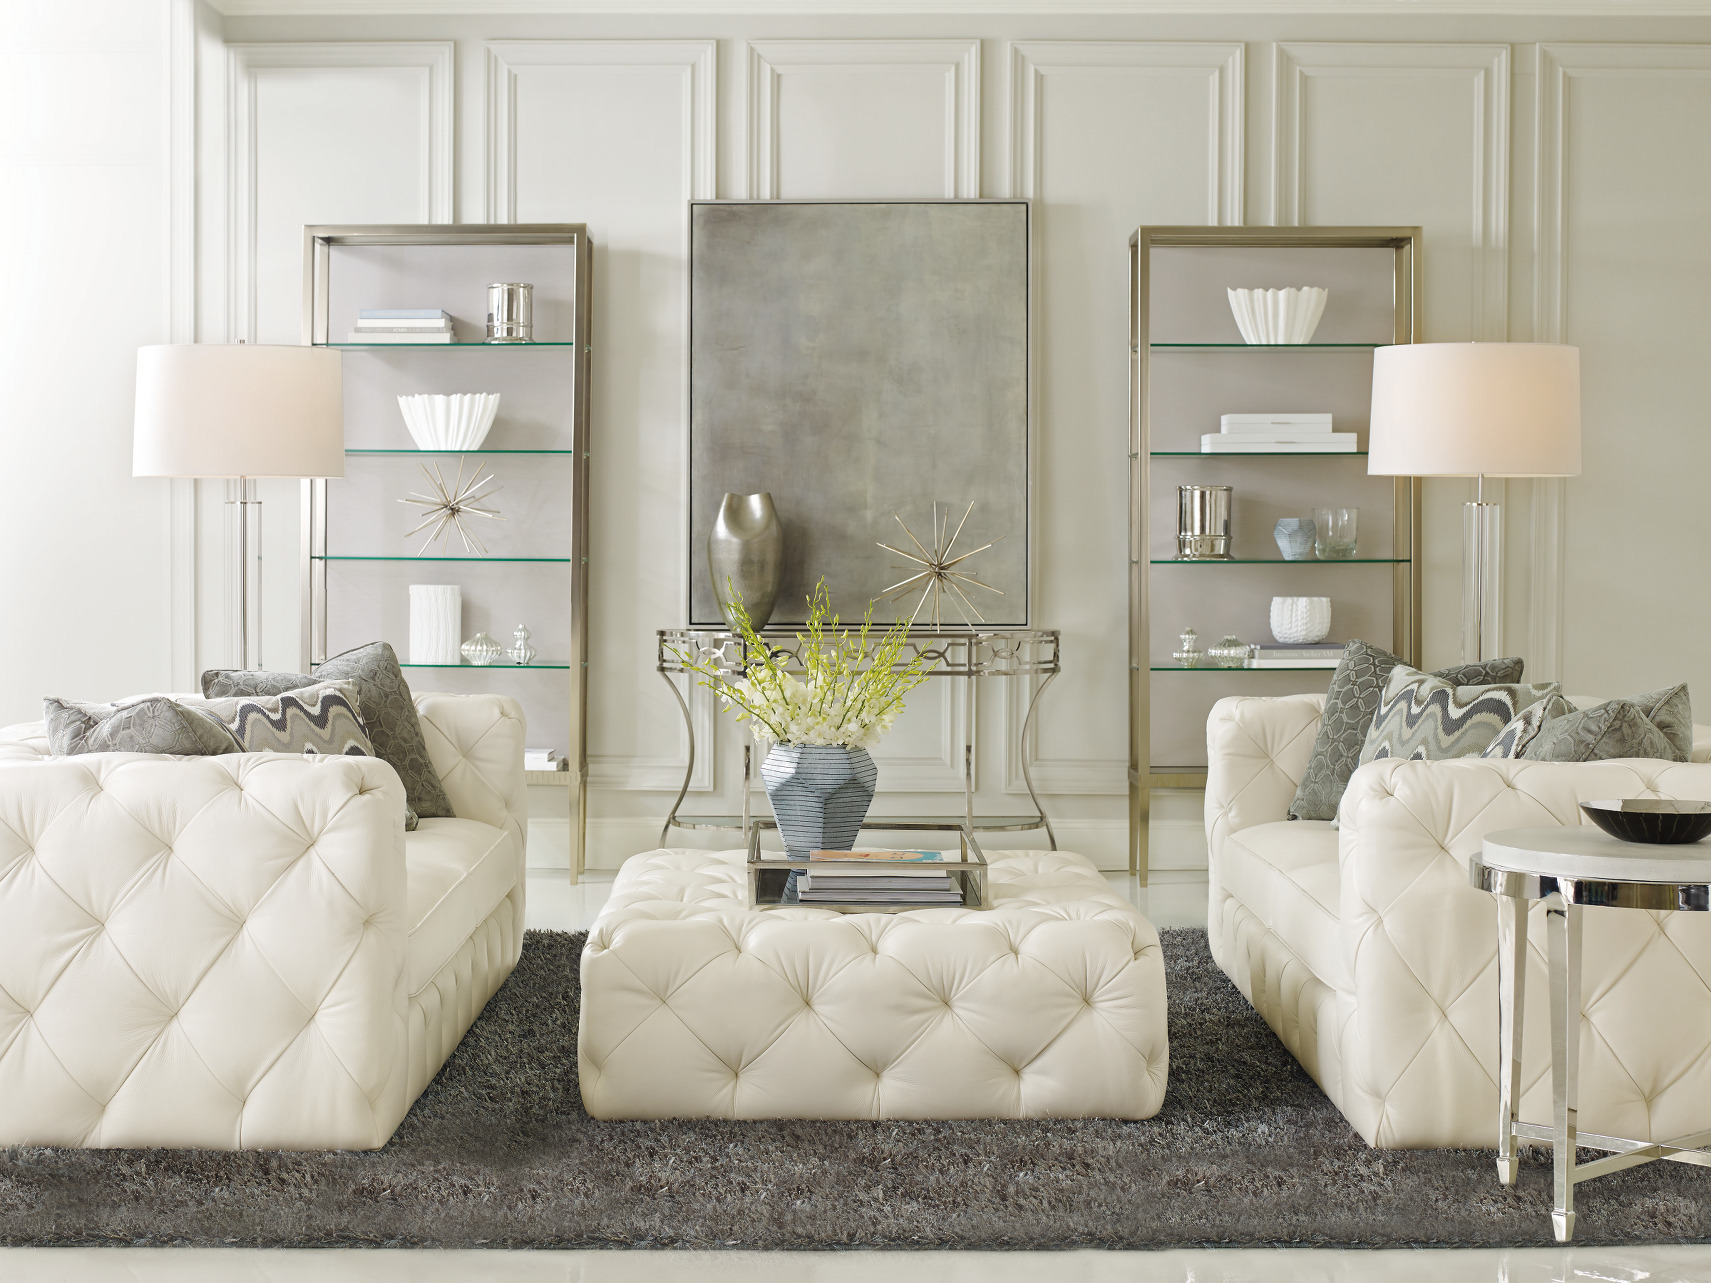 Eight Benefits of Investing in Luxury Furniture